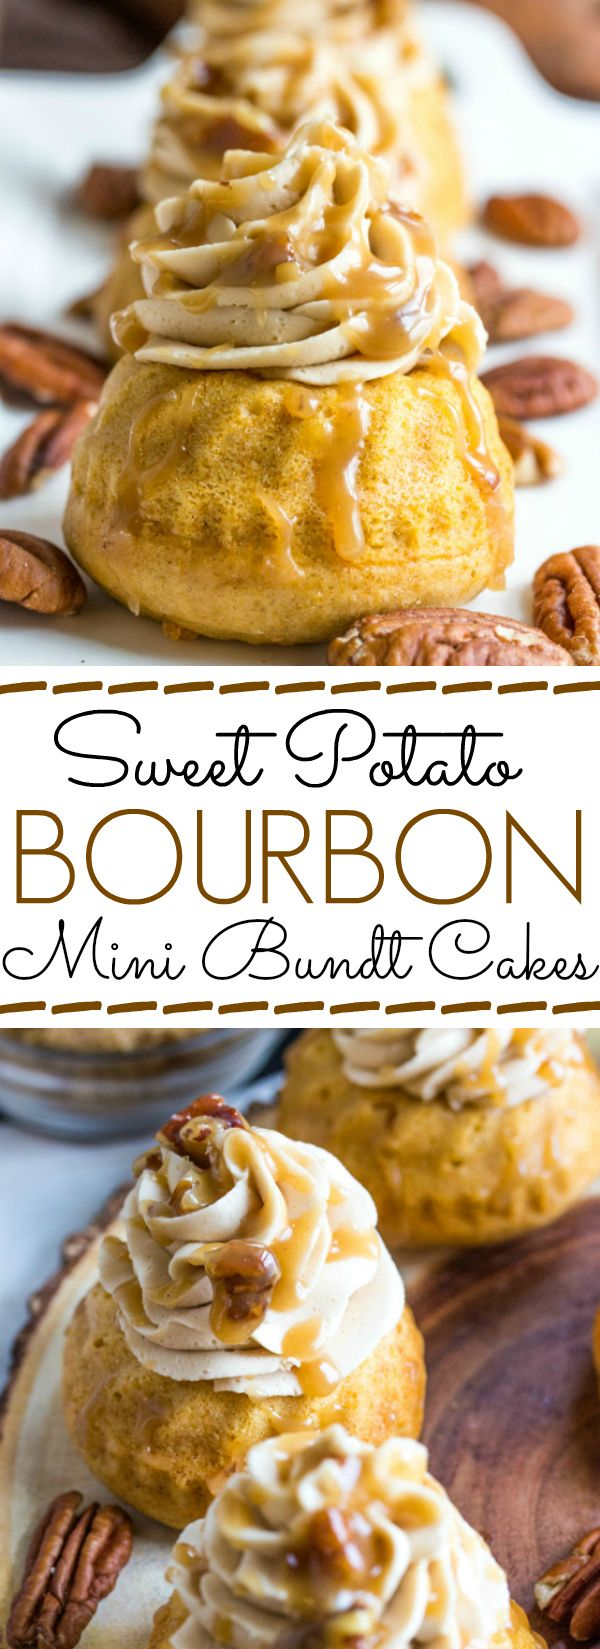 These Sweet Potato Bourbon Mini Bundt Cakes are handheld and topped with maple buttercream and butter pecan topping. A perfect Holiday dessert!